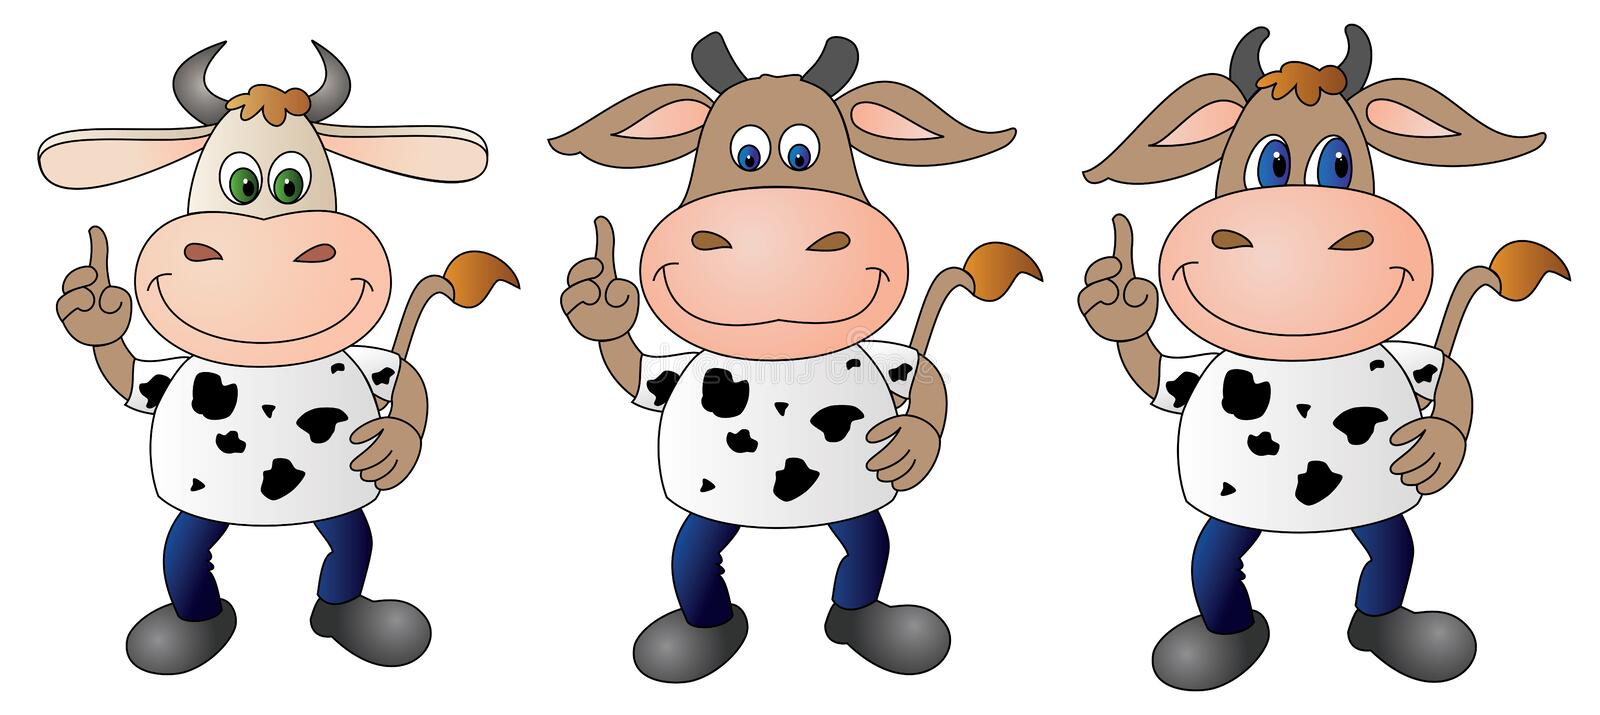 Cow 7 - Composite stock photography